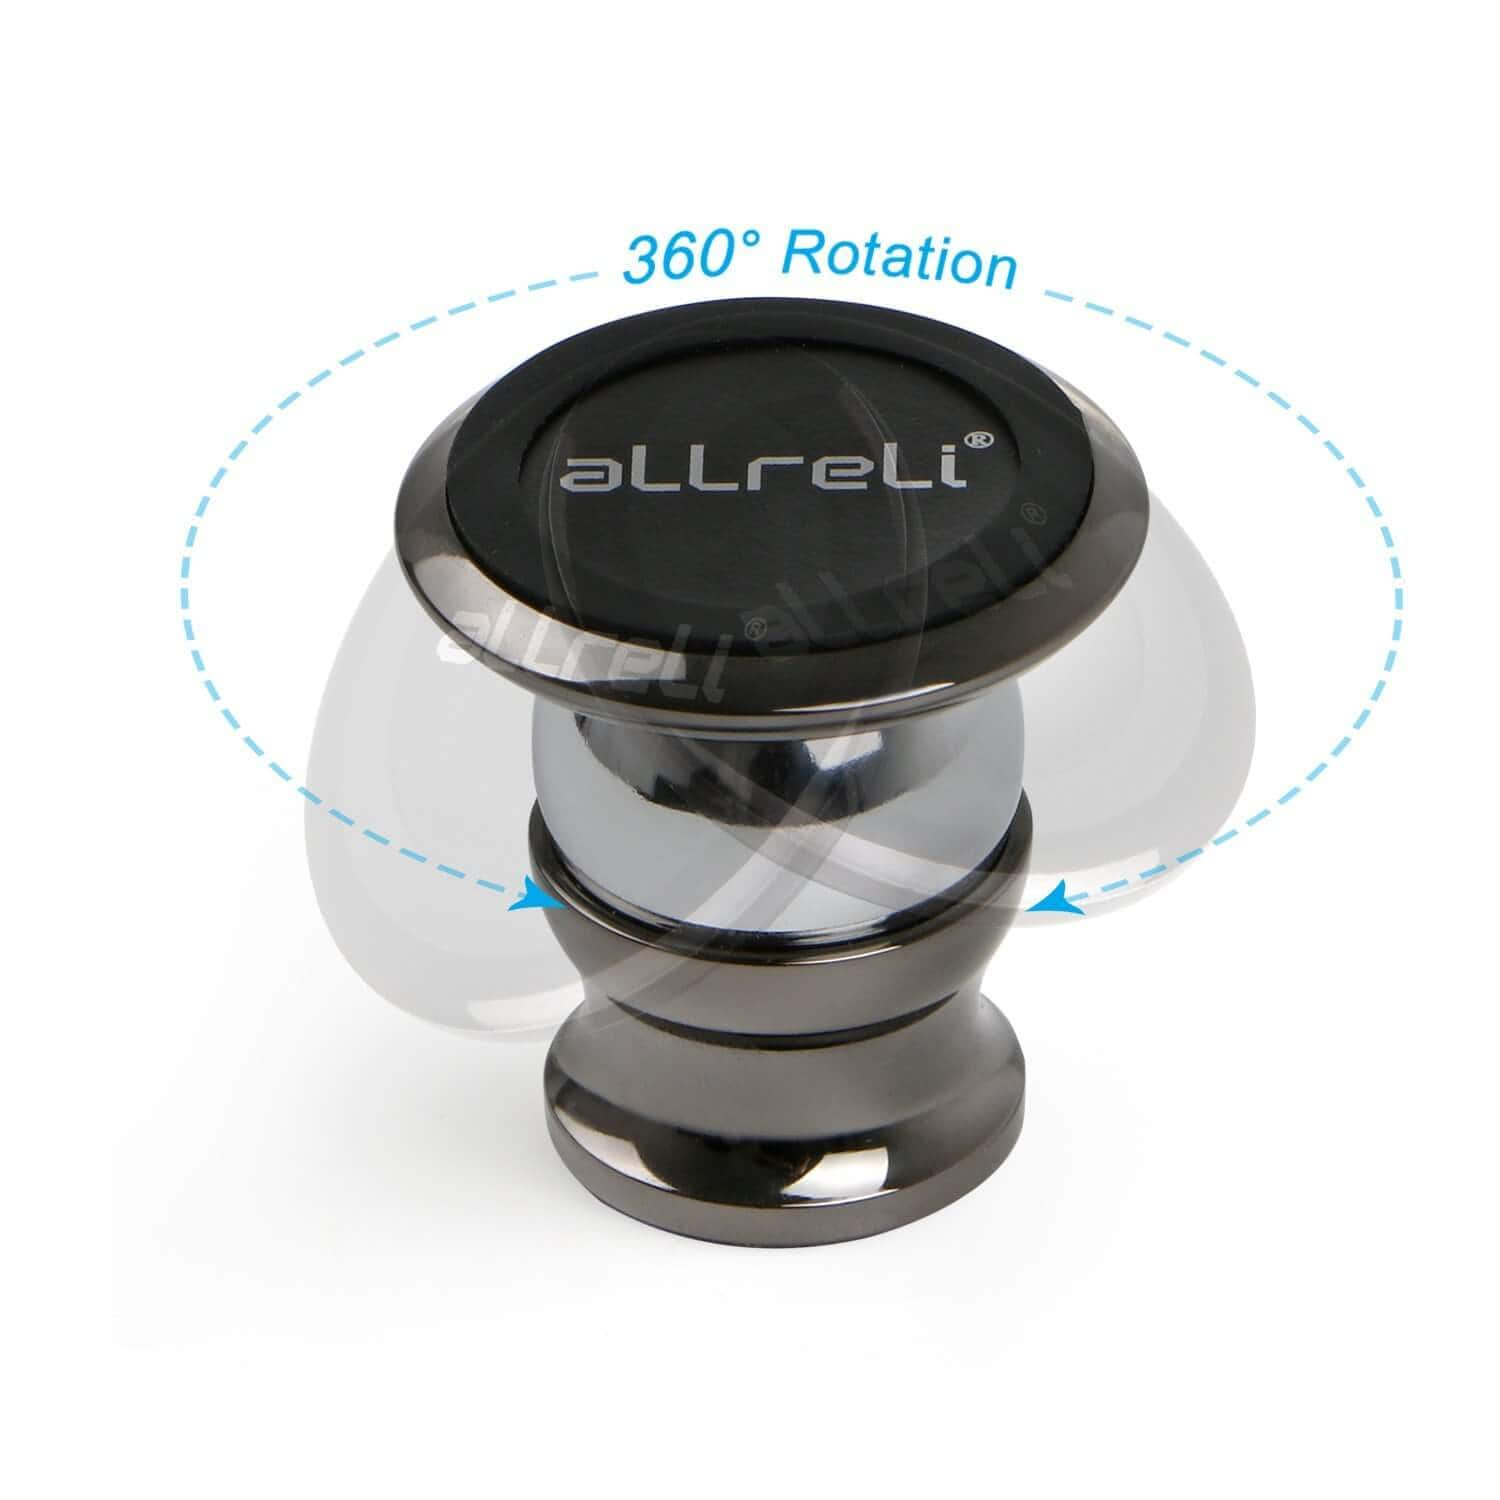 aLLreLi Universal Magnetic Car Cell Phone Mount $10.49 (30% off)